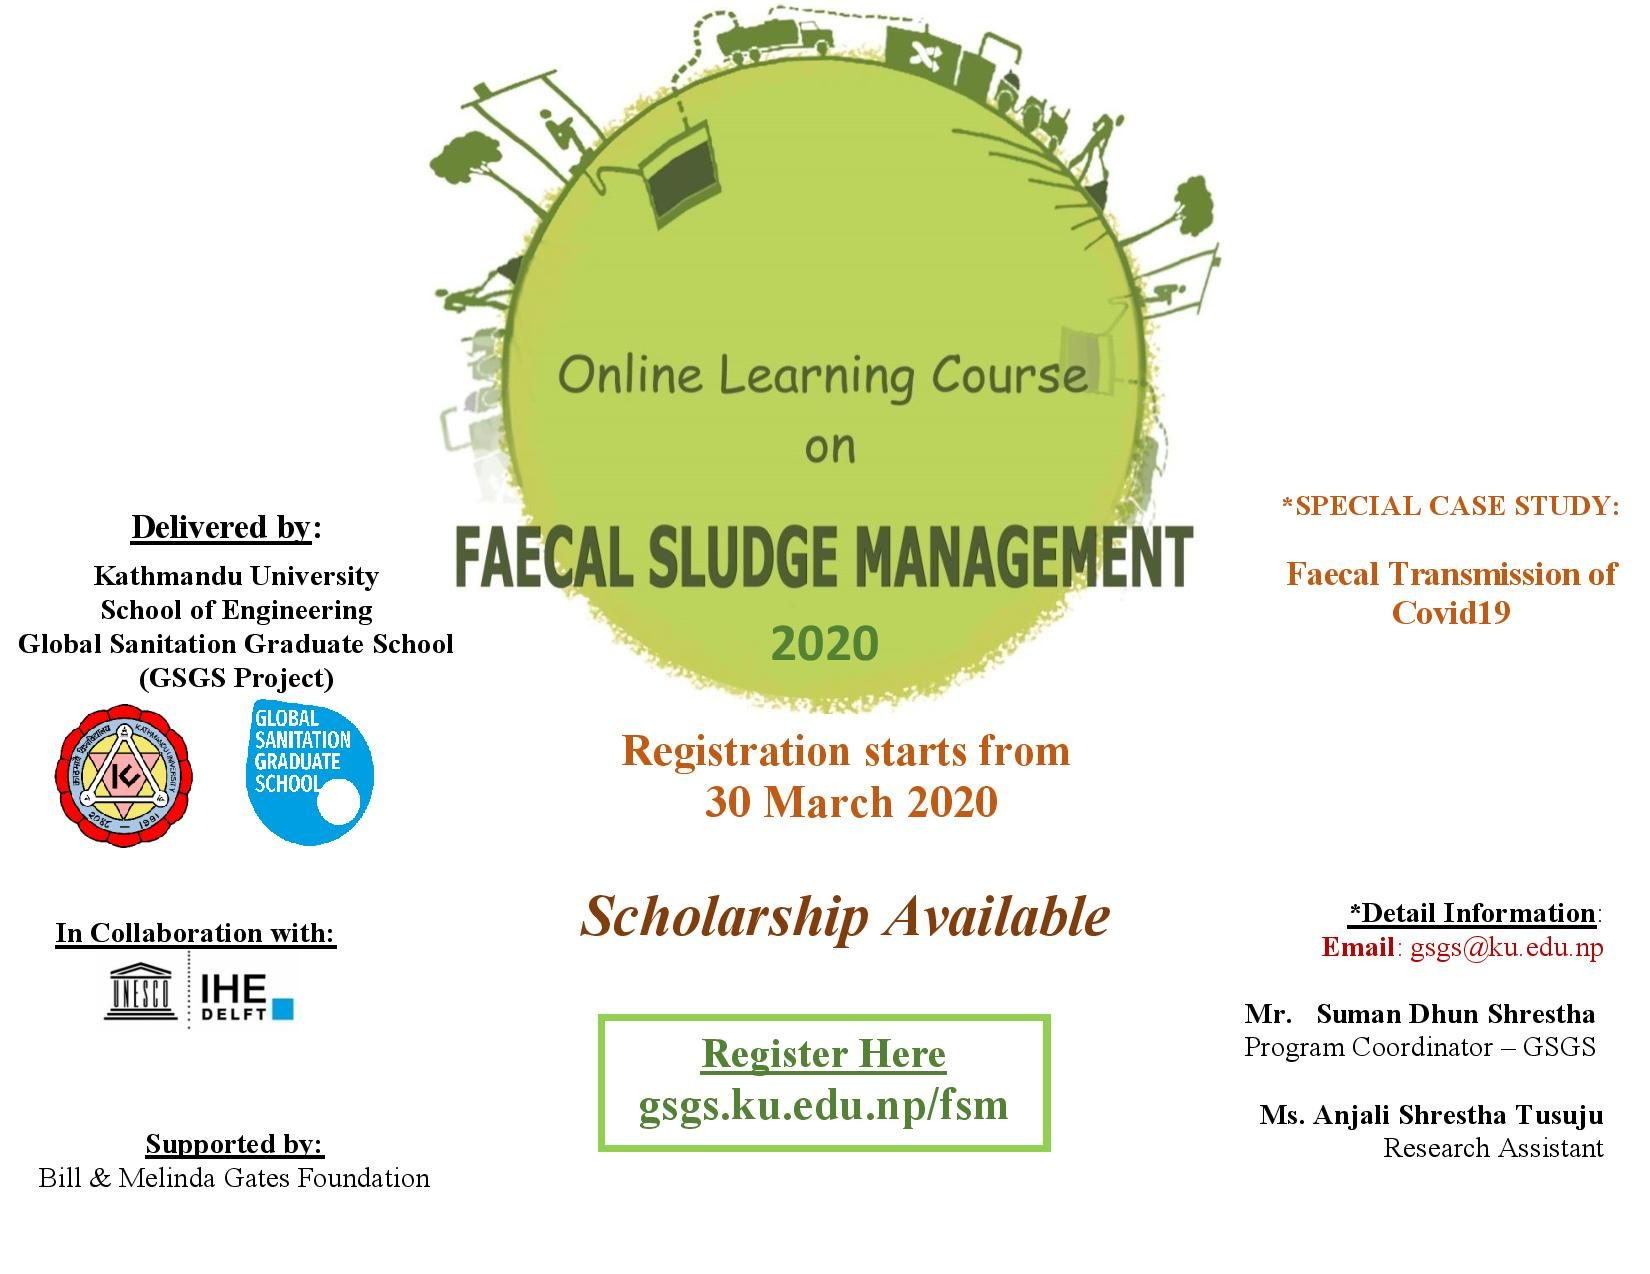 Online Learning Course on Faecal Sludge Management